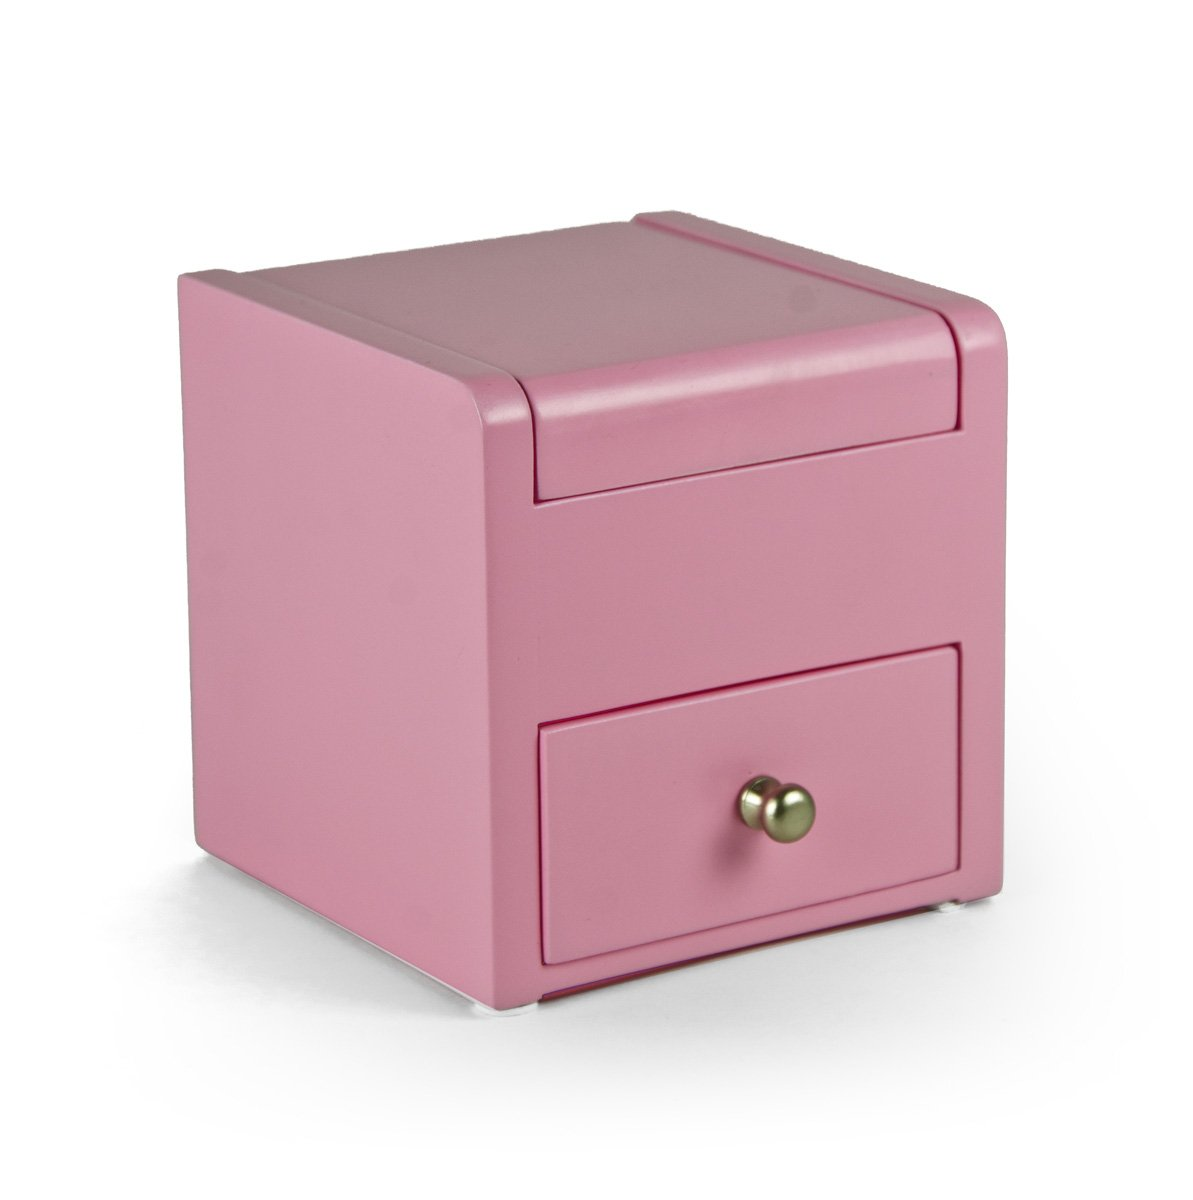 Matte Pink 18 Note Ballerina Musical Jewelry Box With Pull Out Drawer - Easy Song Selection - When I Fell in Love - SWISS (+$65)